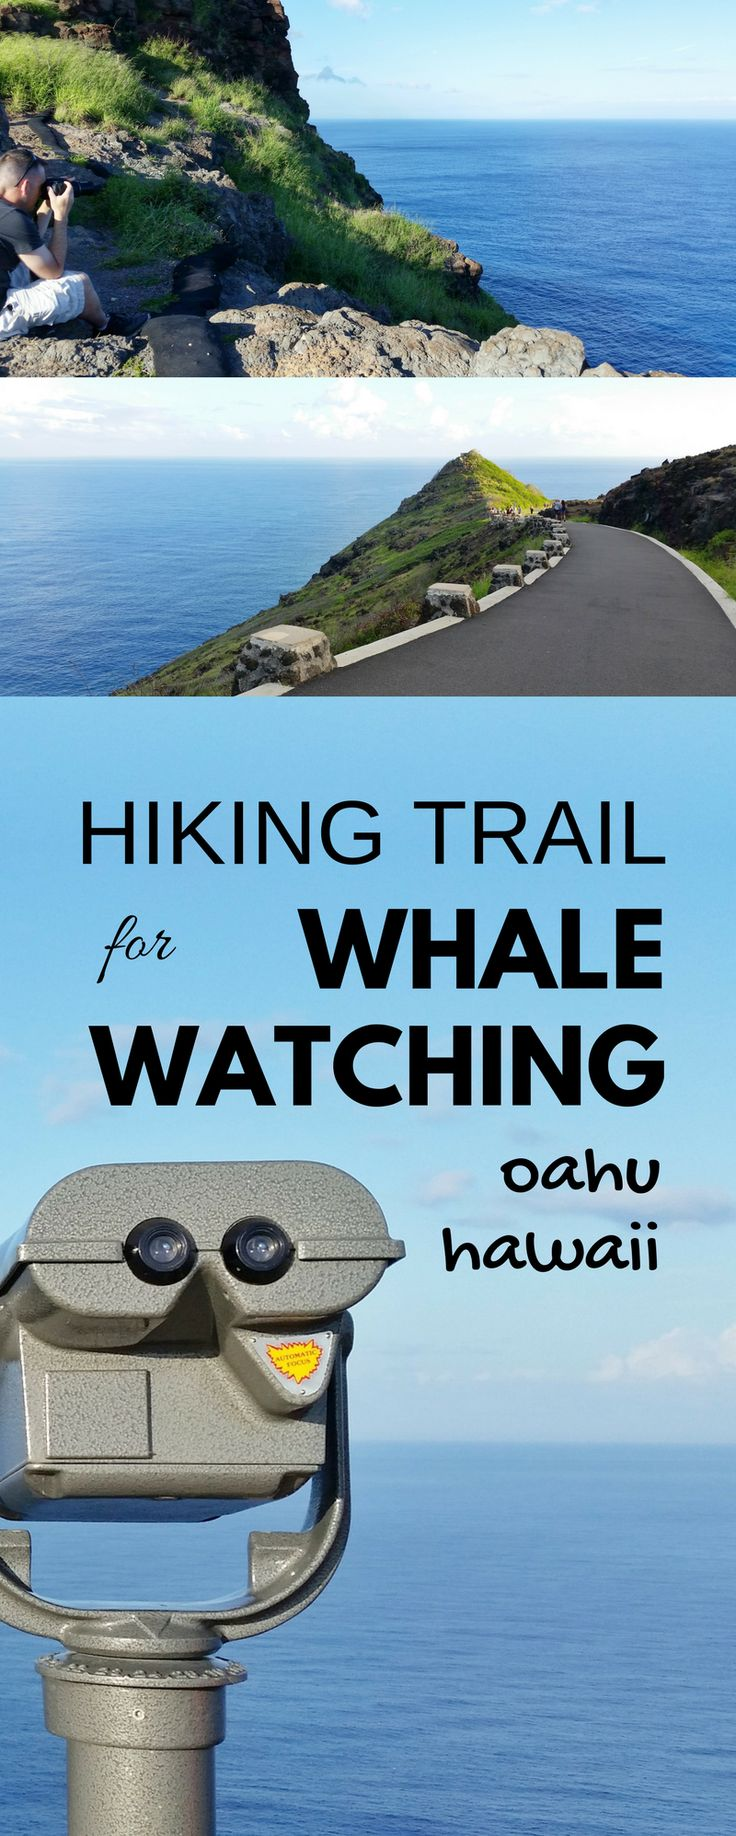 Best spot for whale watching in Oahu. Activities, hiking trail alternative to whale watching tours in Oahu. Lots of hikes on Oahu, do this one if Hawaii vacation is during best time for whale season! Things to do nearby beaches, snorkeling! Make a trip to this spot from Waikiki, Honolulu as an outdoor travel destination for bucket list budget adventures! It's free! Put binoculars on the checklist of what to pack for Hawaii packing list! Maui activities best to see whales. #hawaii #oahu